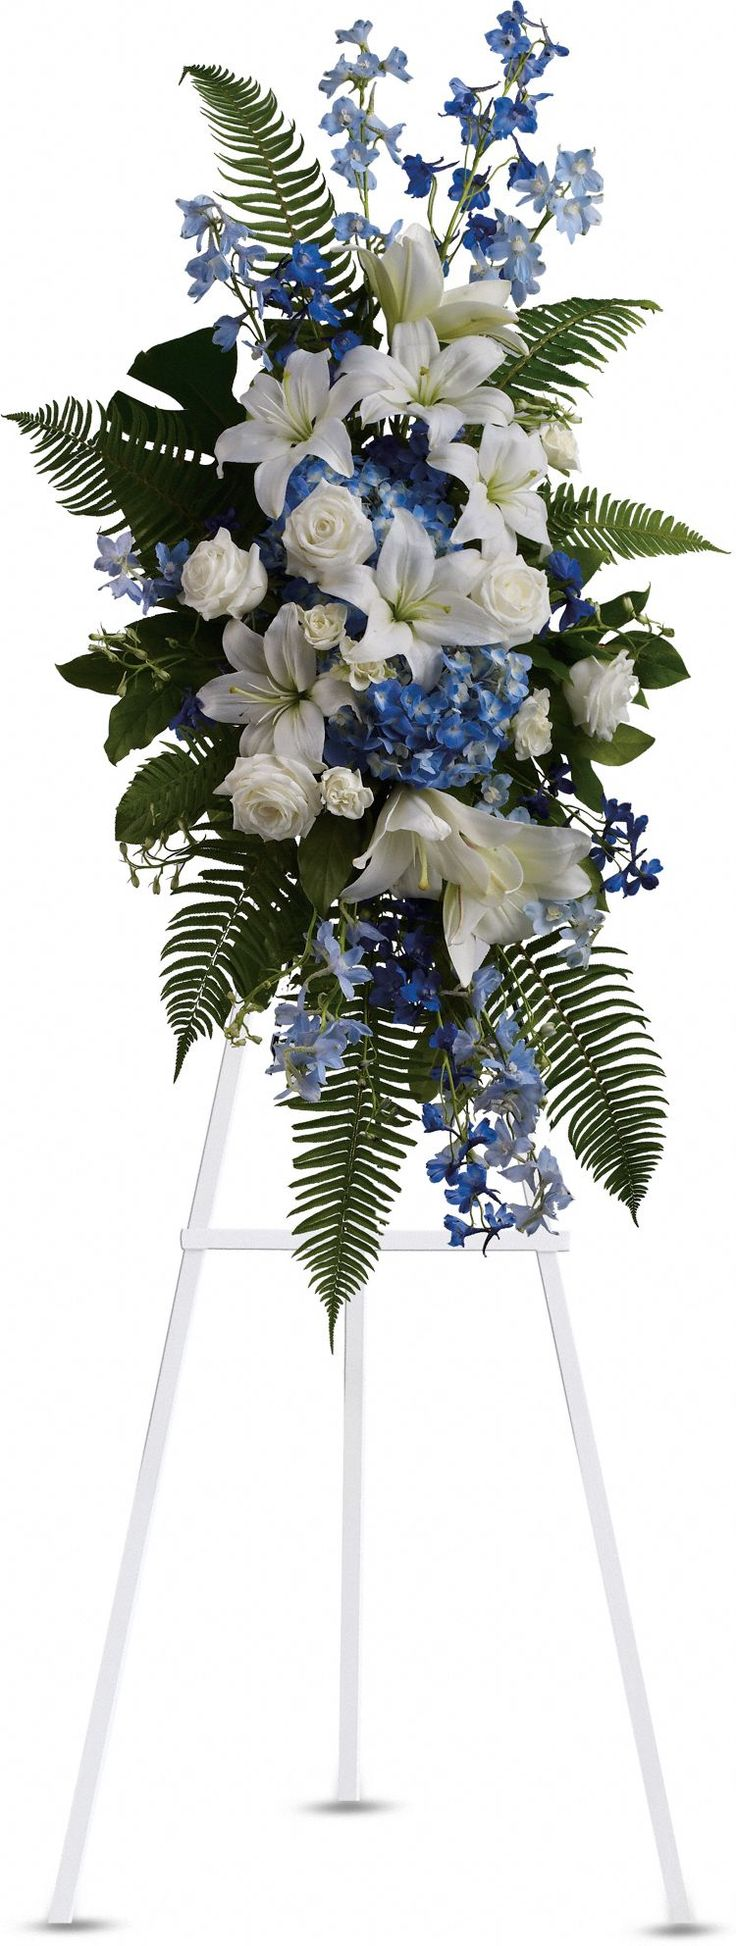 Floral Arrangement Equipment : Best images about flower arrangements supplies on